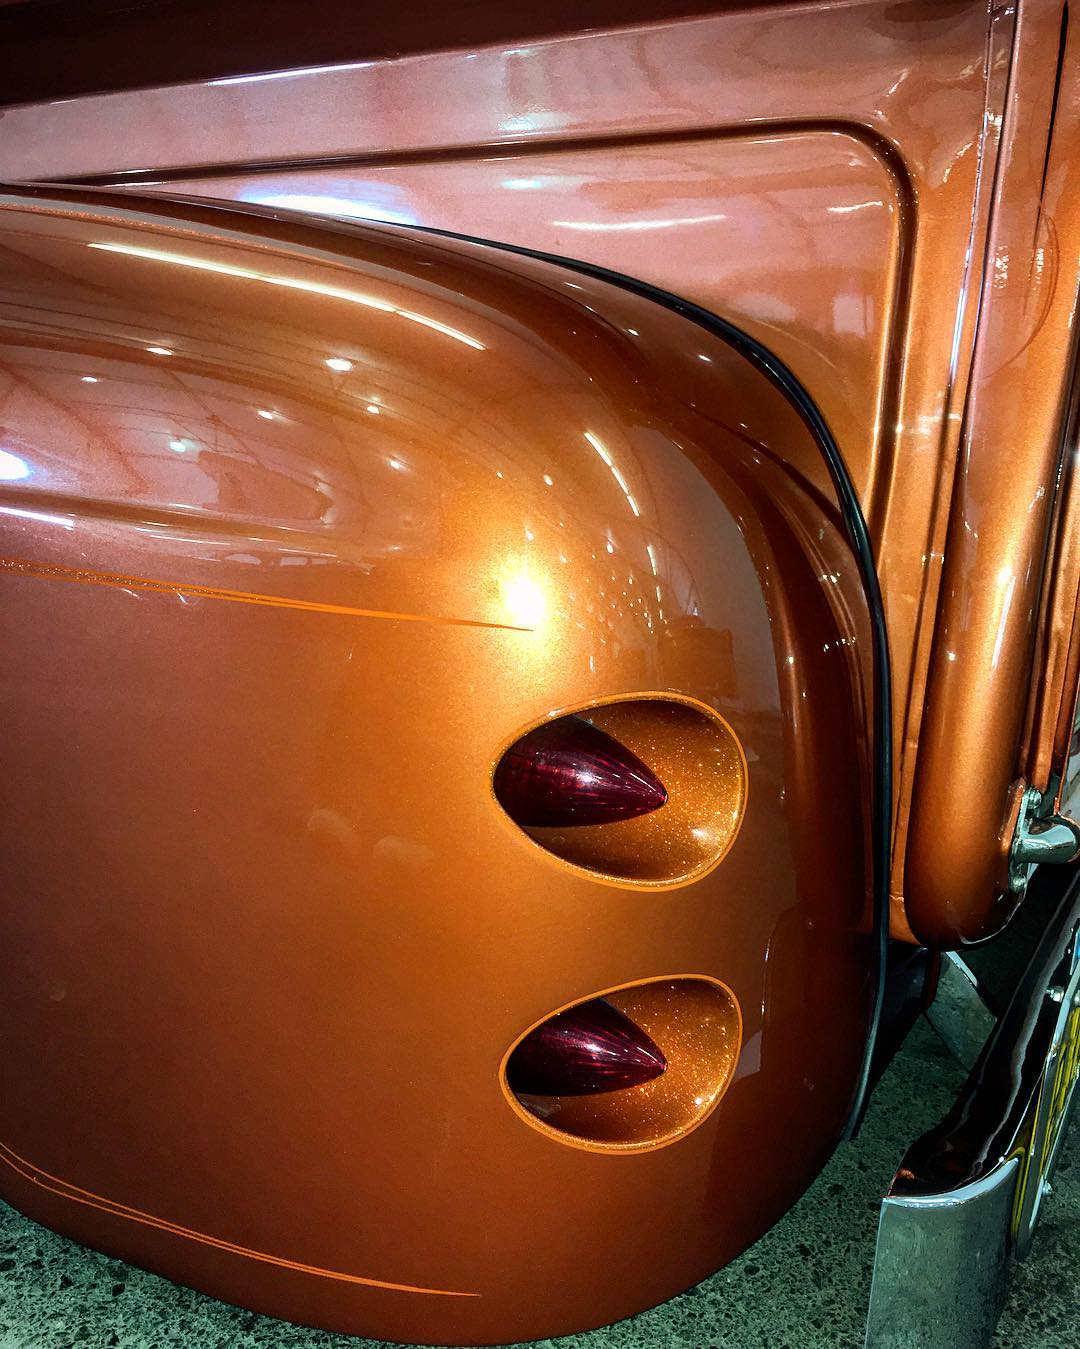 I dig the flake inside these frenched taillights autorama2017